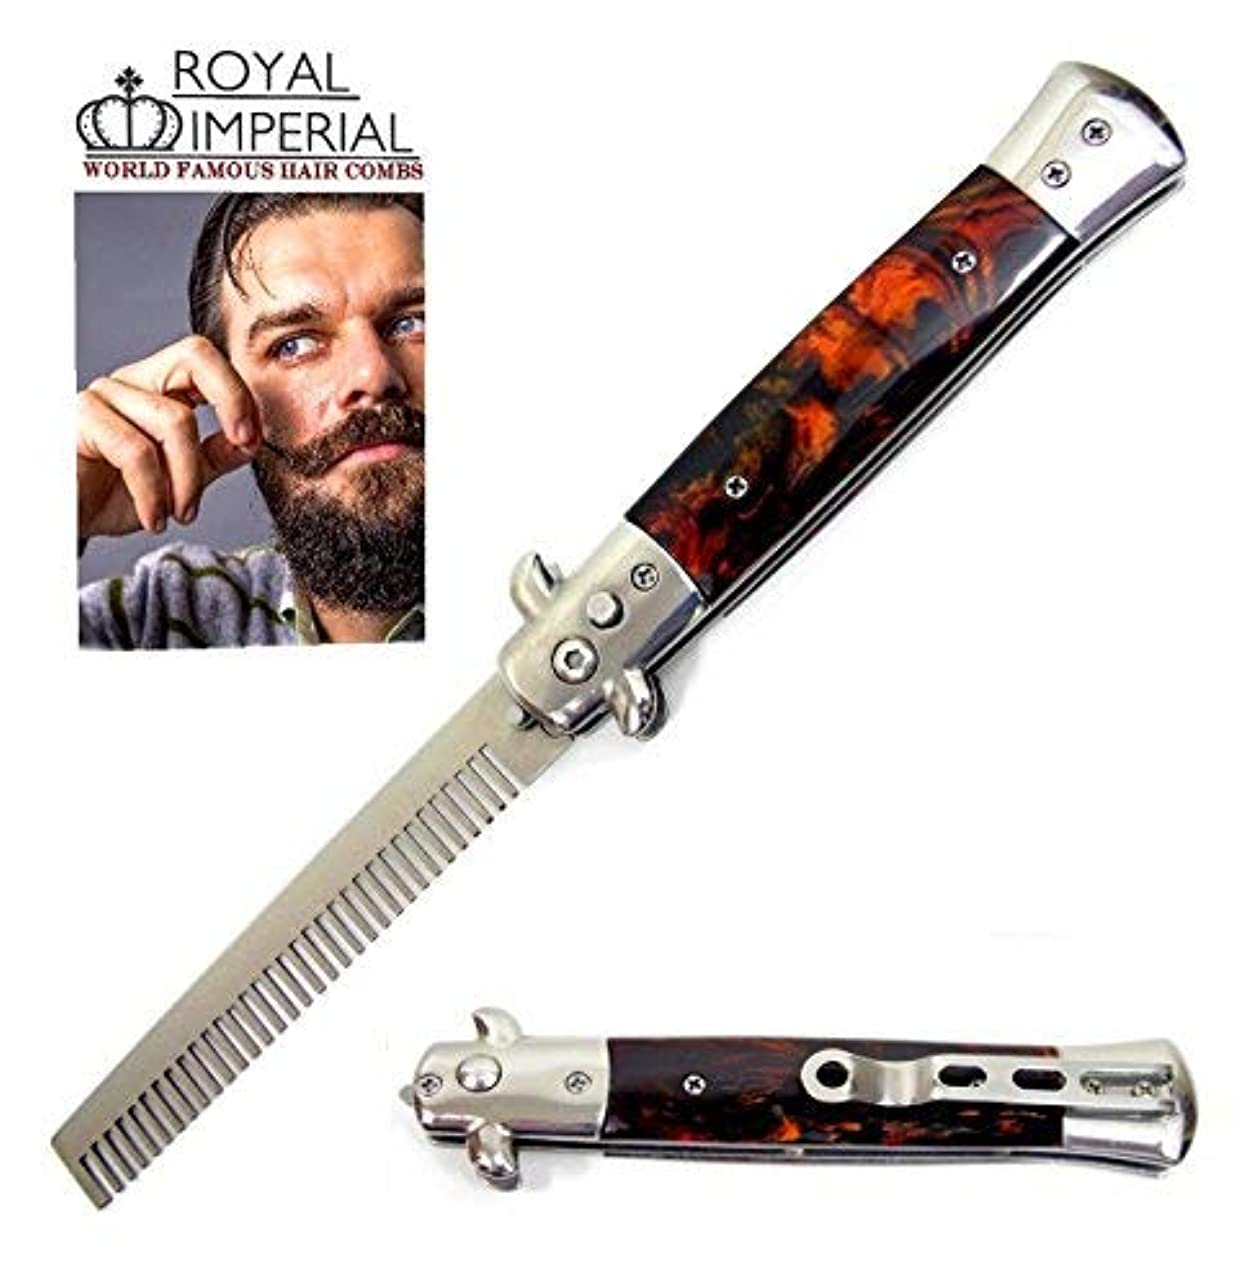 Royal Imperial Metal Switchblade Pocket Folding Flick Hair Comb For Beard, Mustache, Head TORTOISE SHELL FIRE...